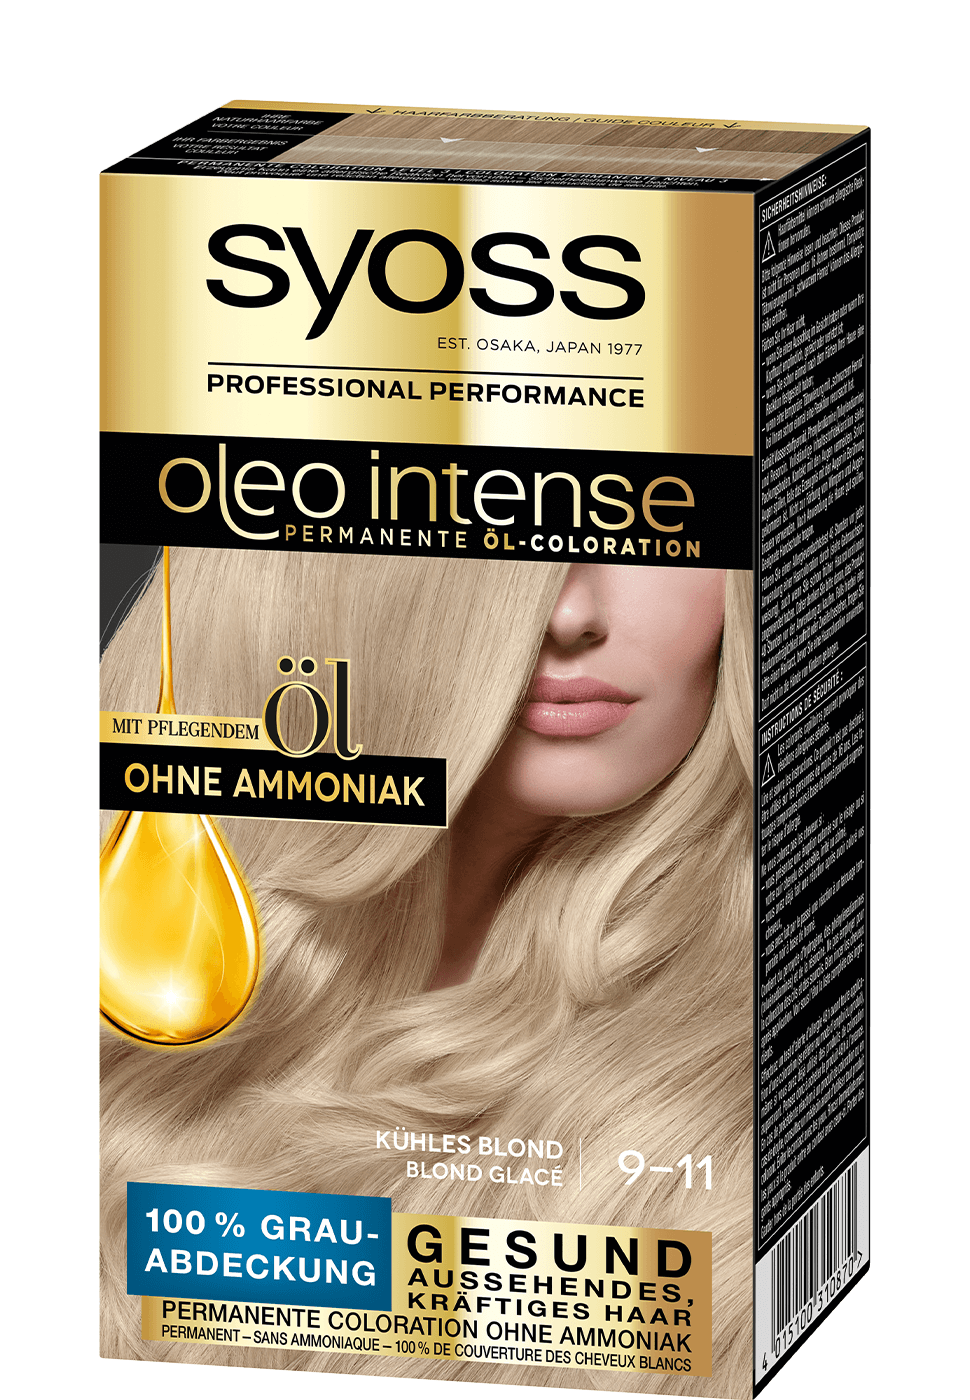 syoss_de_oleo_intense_9_11_kuehles_blond_970x1400